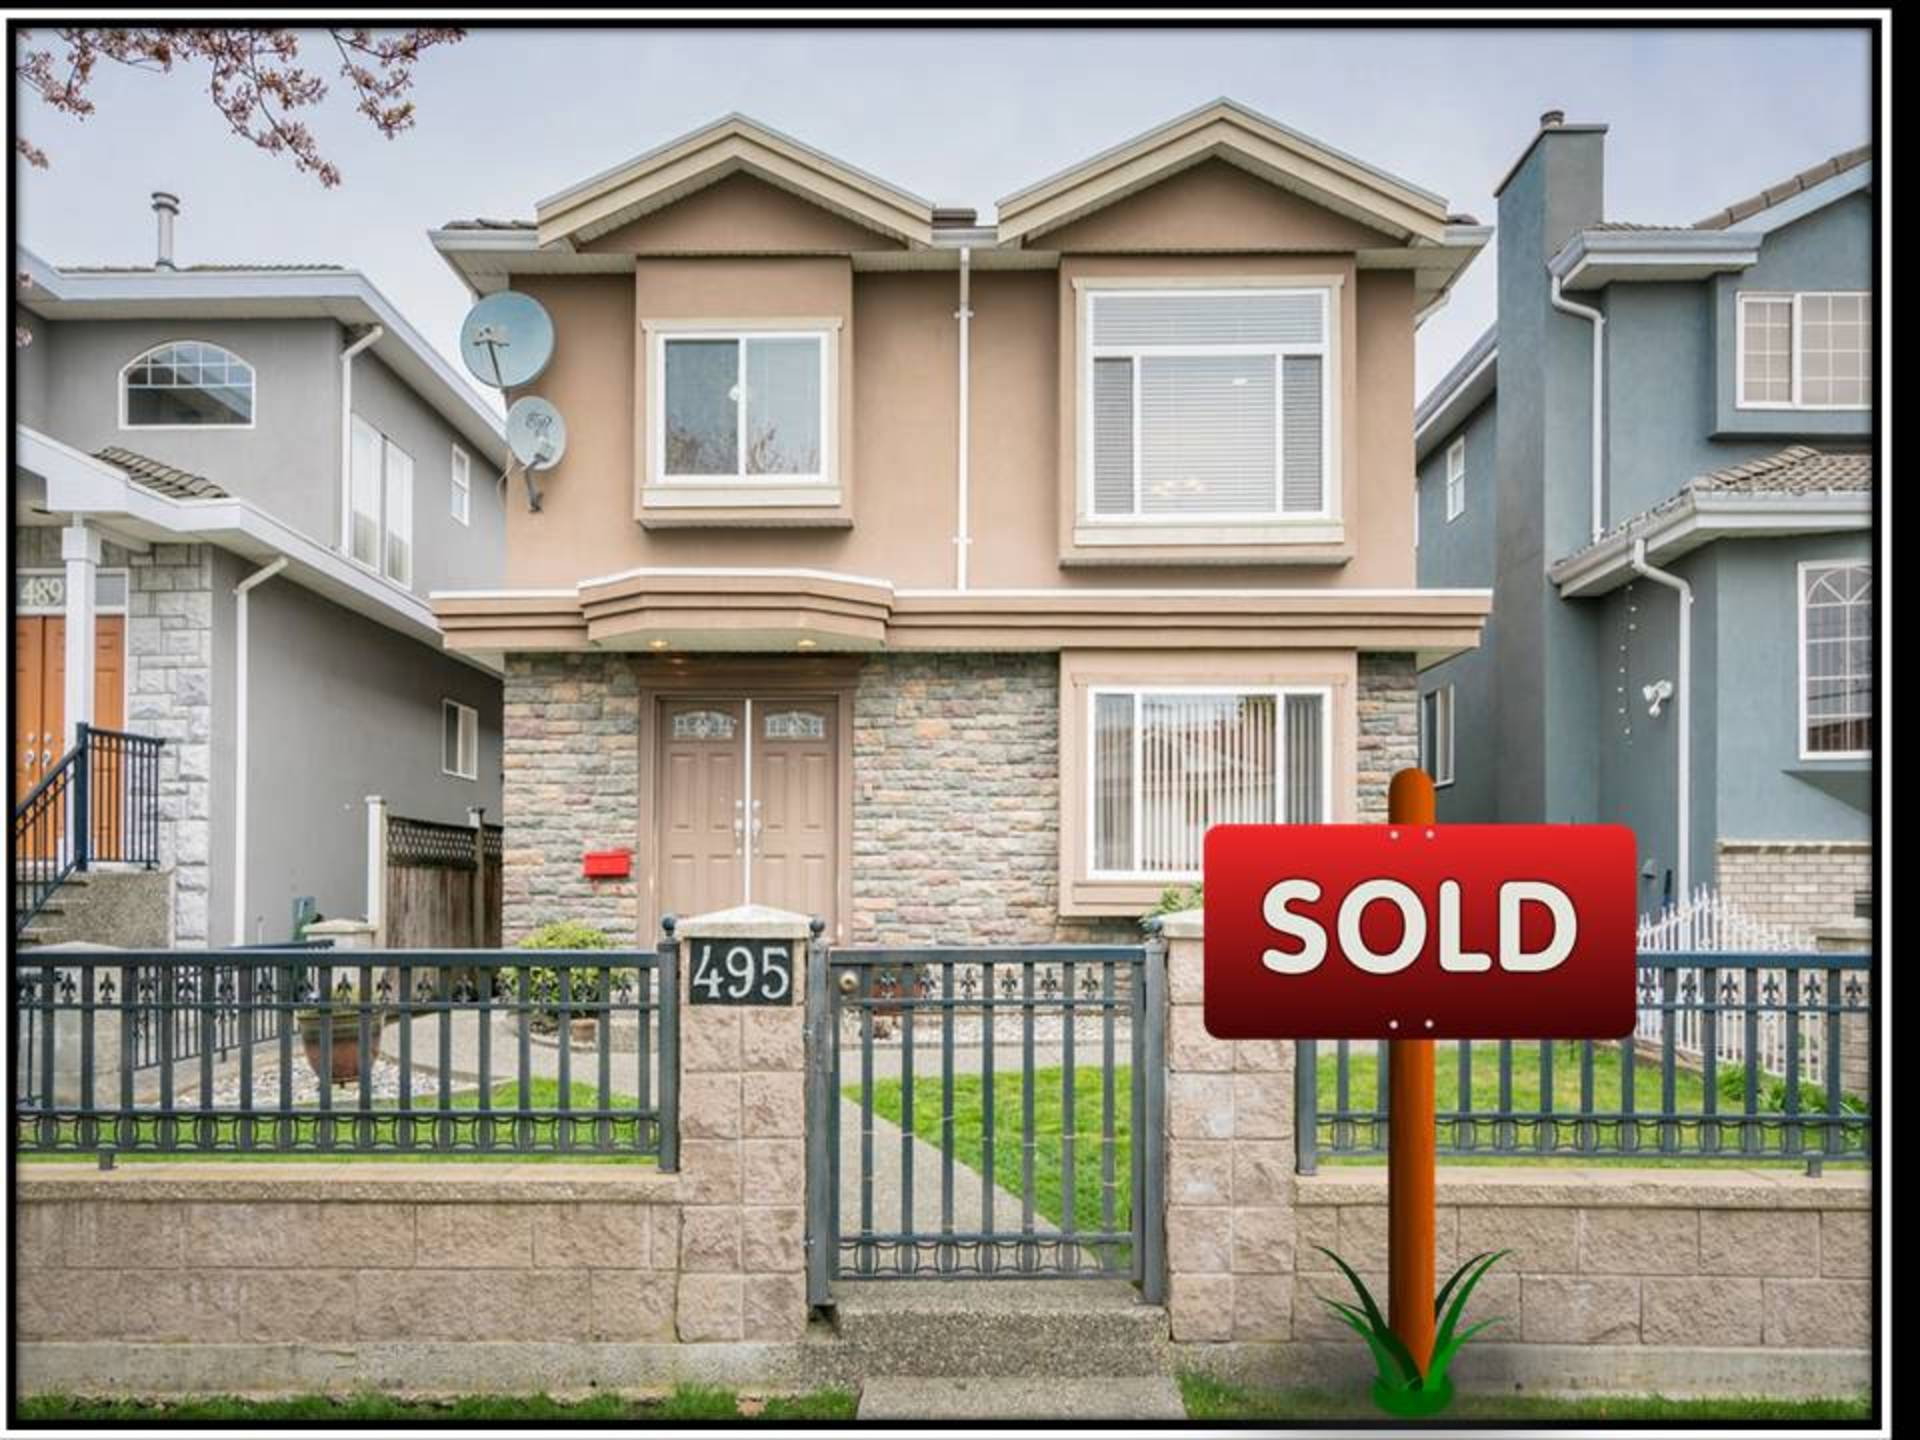 sold-image-jpeg at 495 E 58th Avenue, South Vancouver, Vancouver East